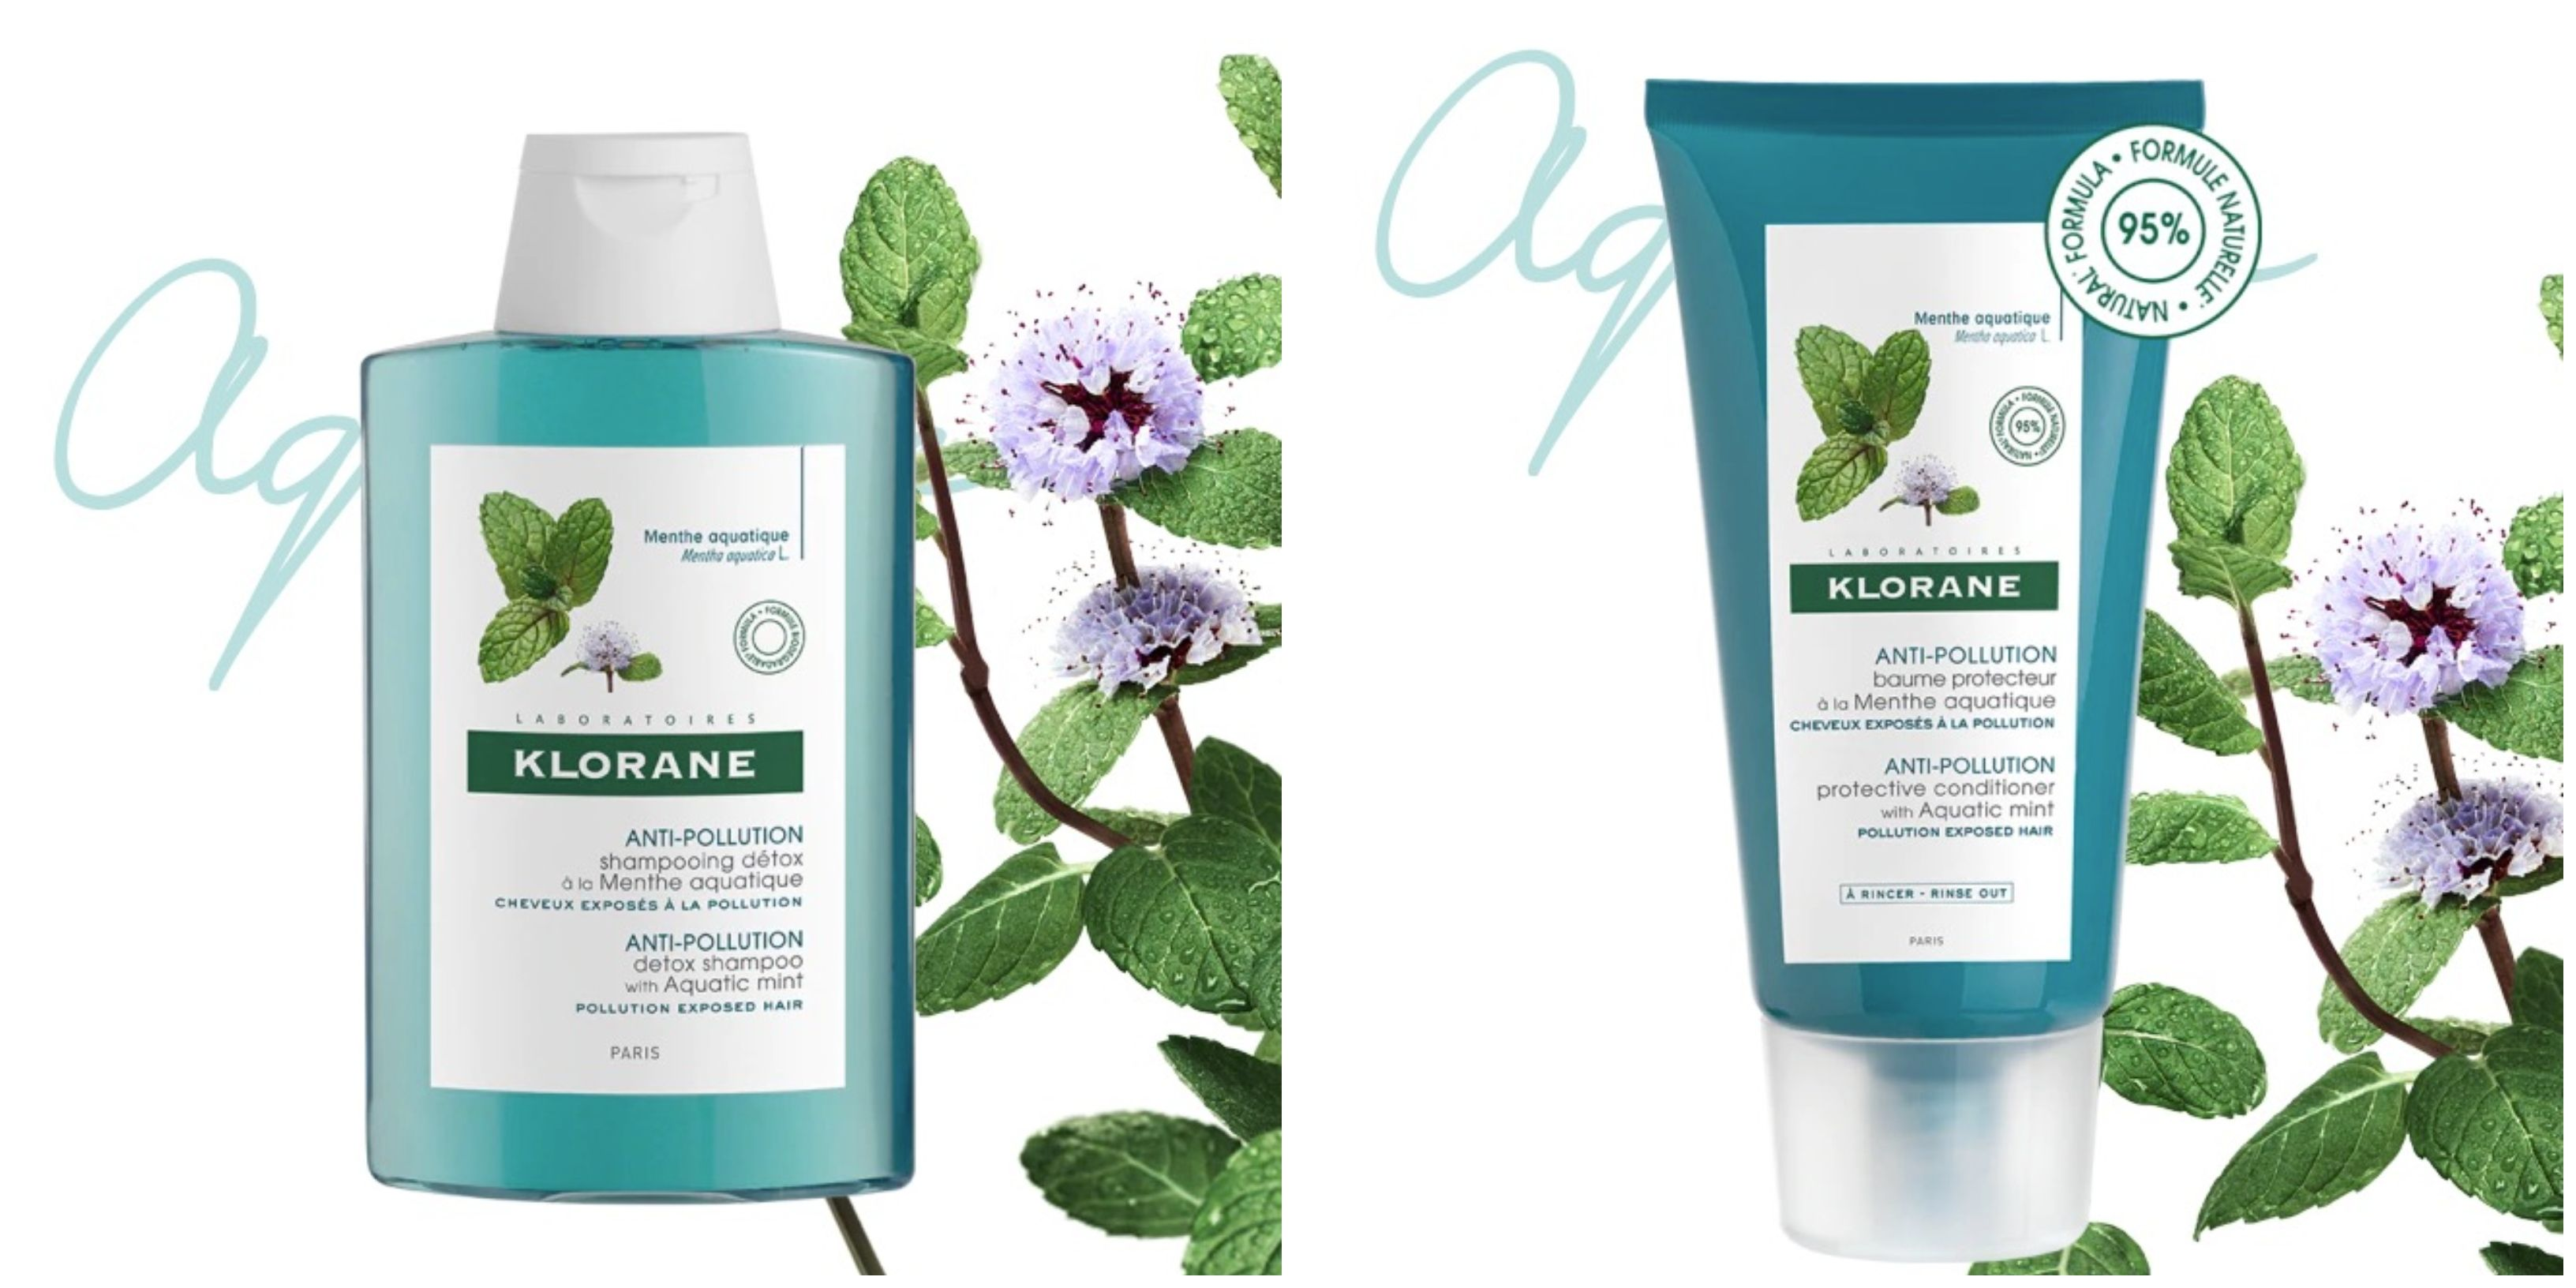 Klorane's Anti-Pollution shampoo and conditioner claims to depollute water while detoxifying hair